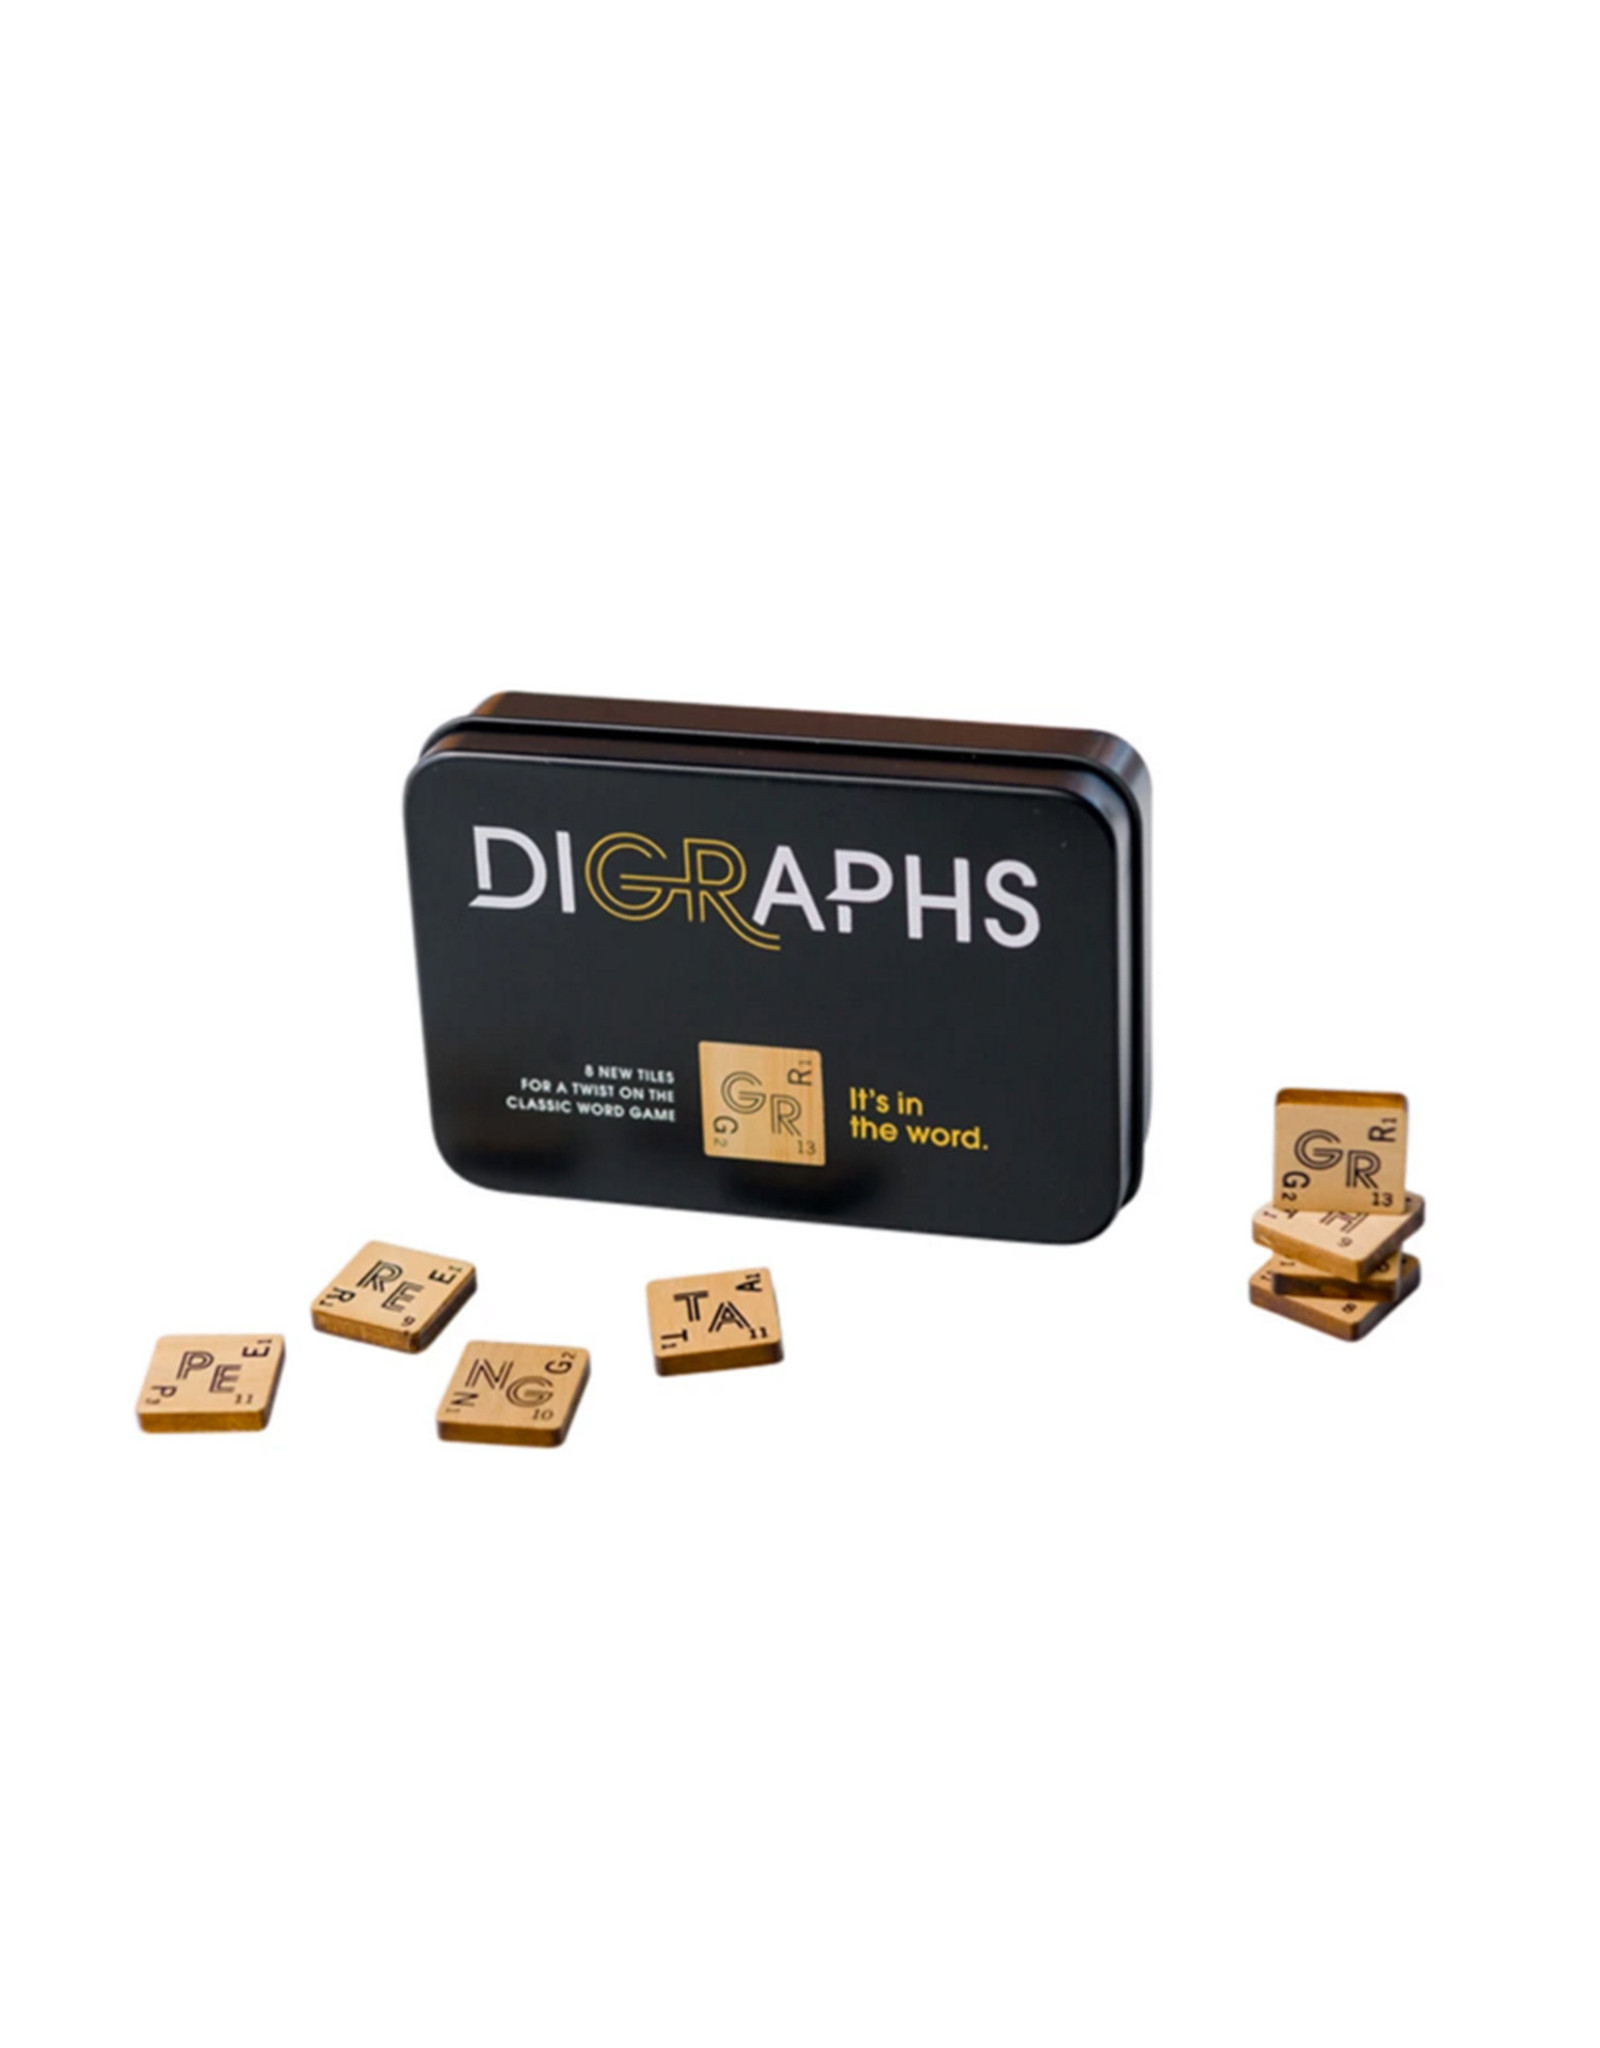 Digraphs: Scrabble Board Game Accessory